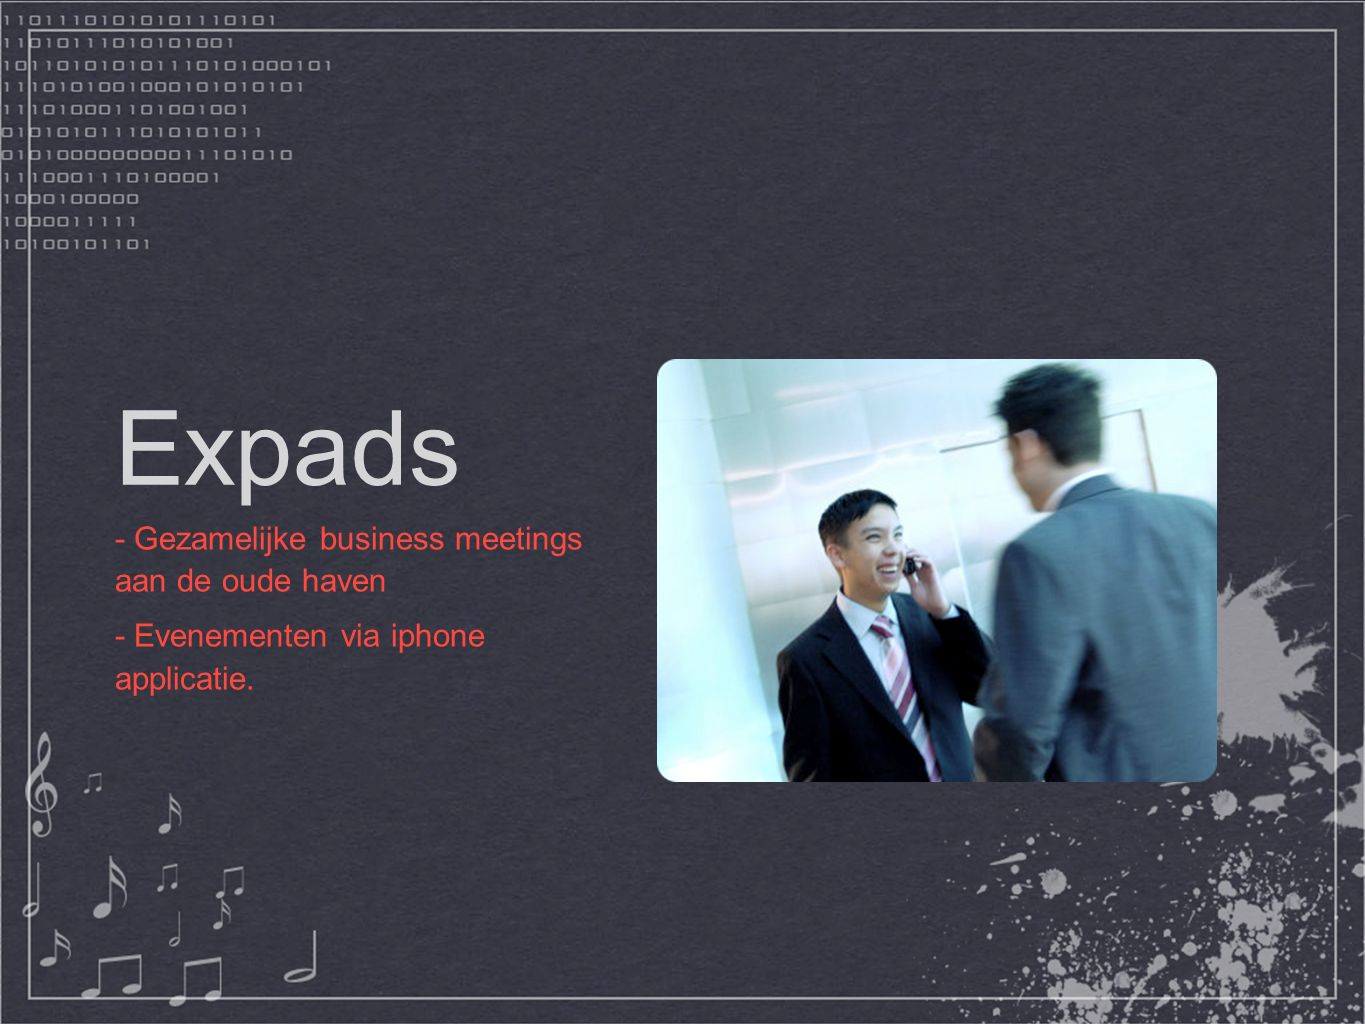 Expads - Gezamelijke business meetings aan de oude haven - Evenementen via iphone applicatie.